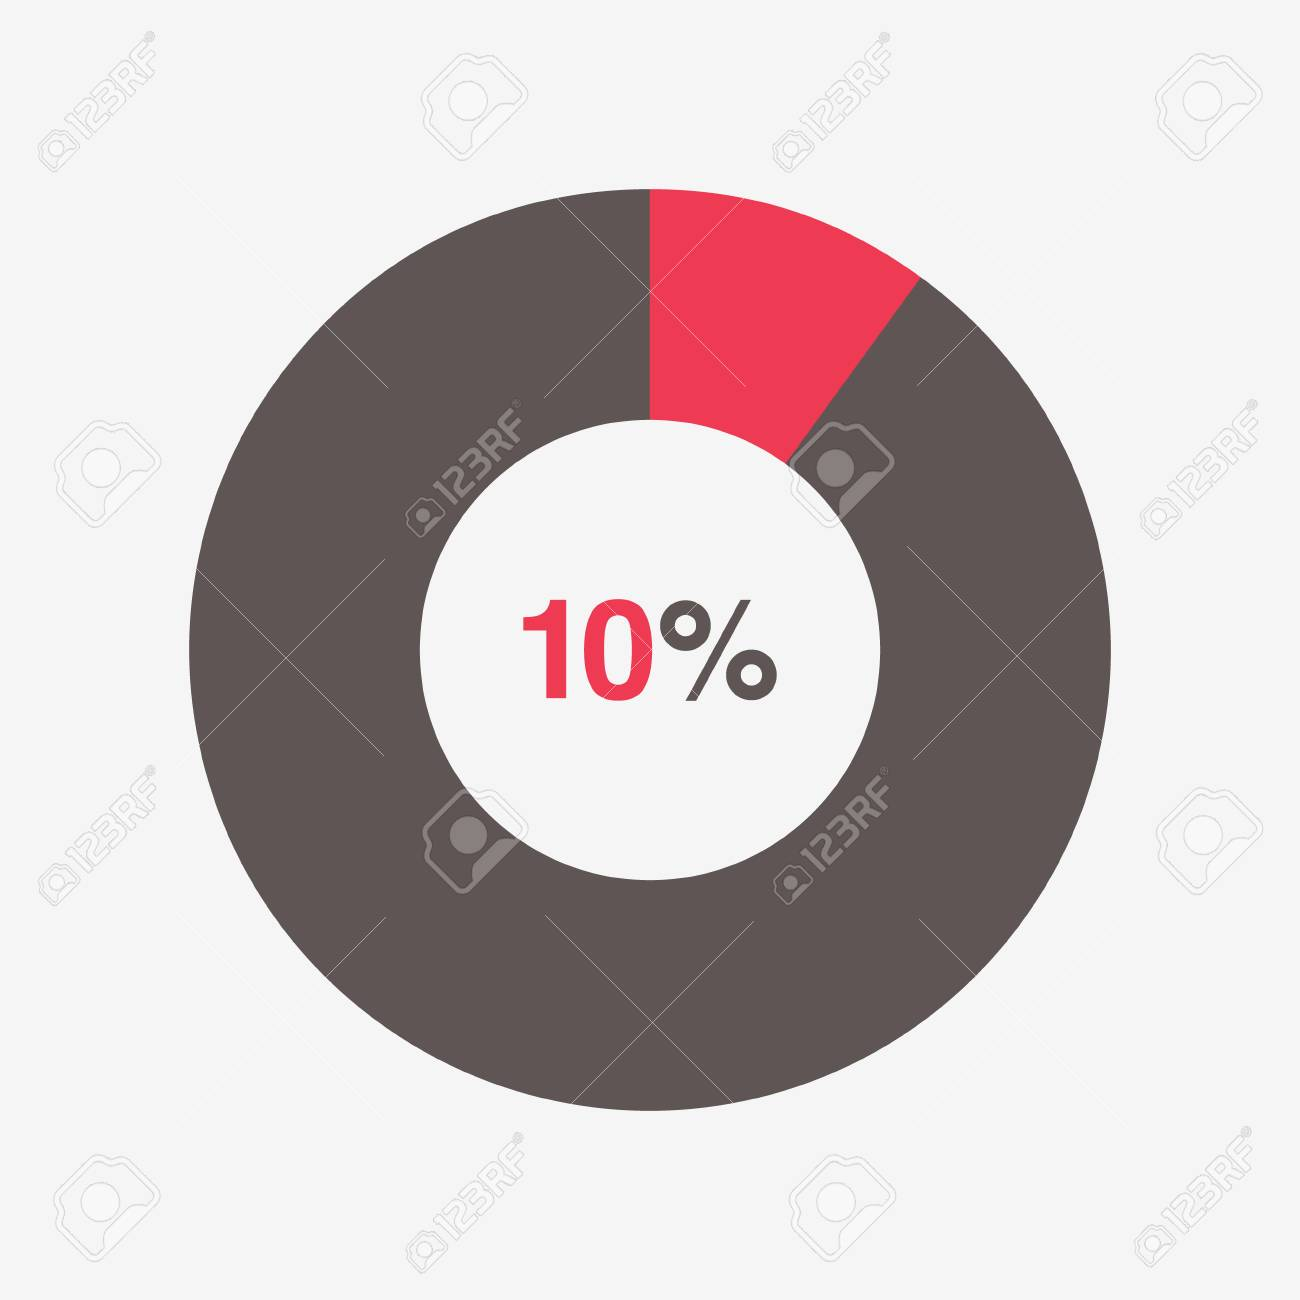 hight resolution of icon red and black chart 10 percent pie chart vector stock vector 66669426